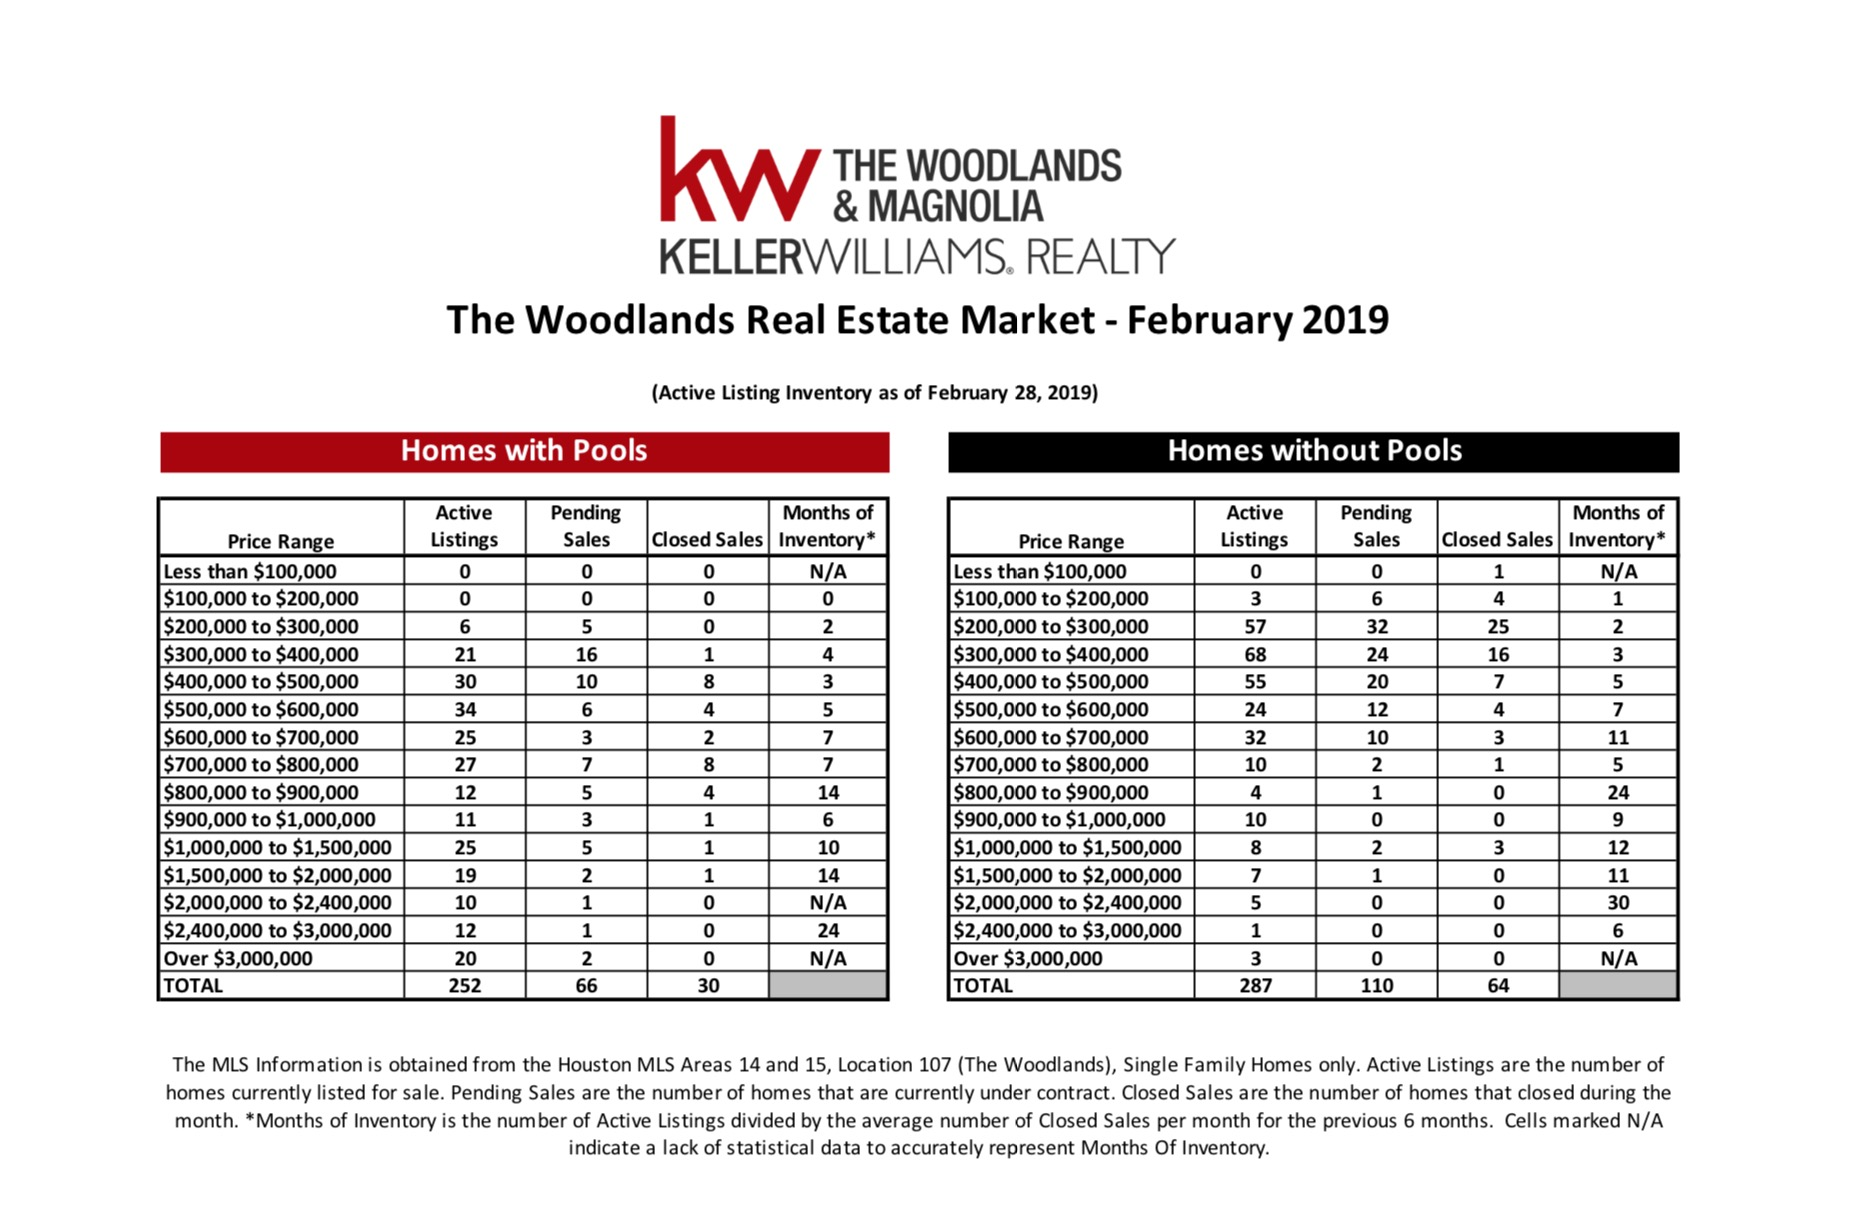 , February 2019 MarketWatch Report – The Woodlands, KW Woodlands